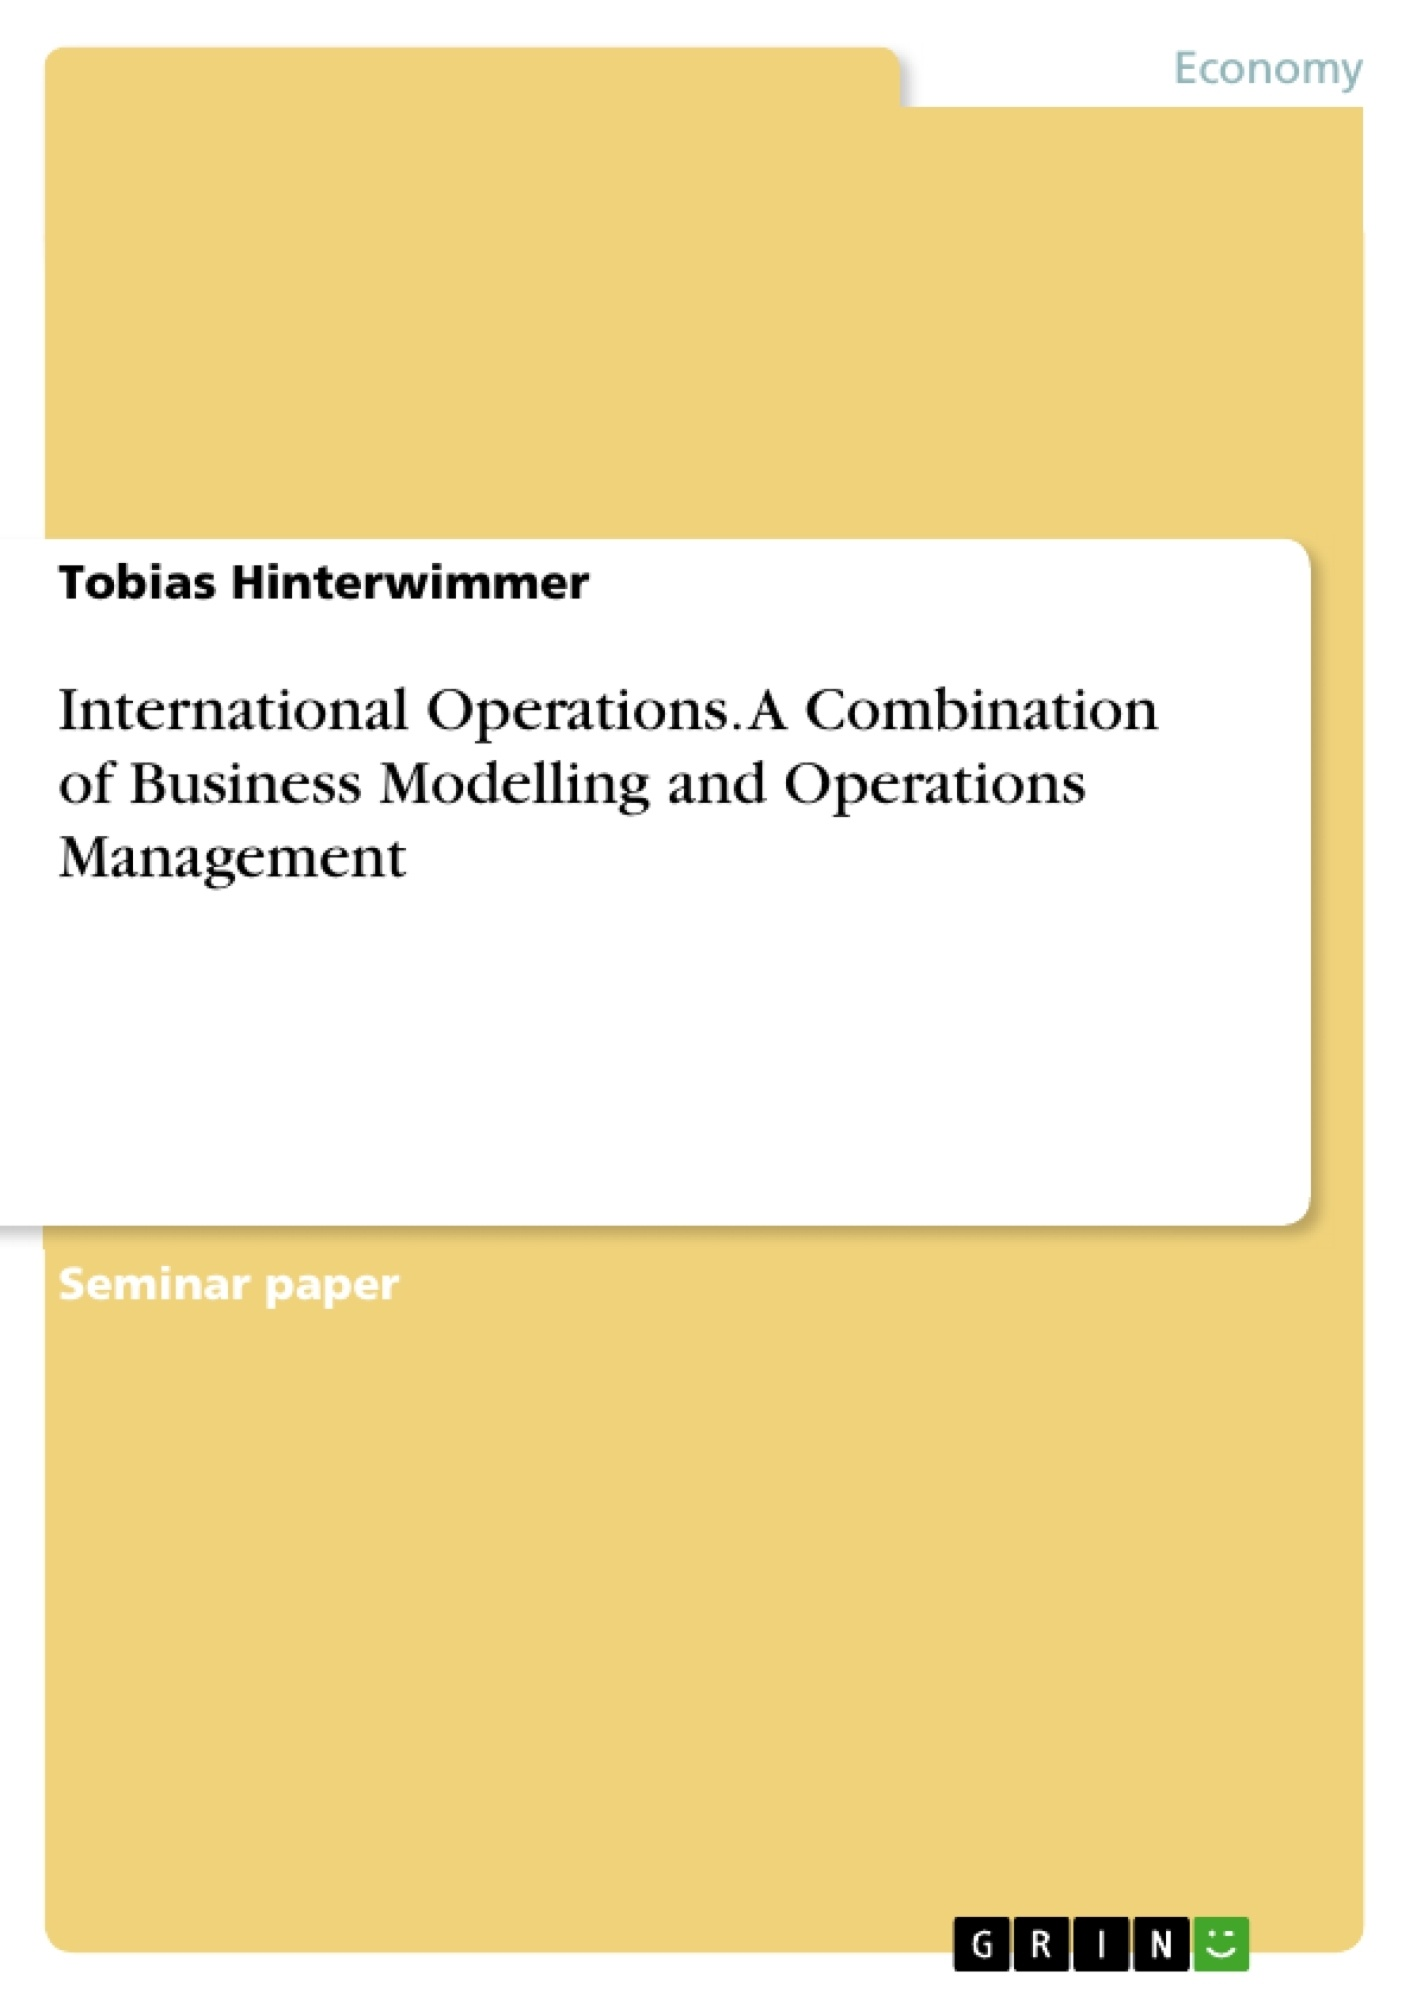 Title: International Operations. A Combination of Business Modelling and Operations Management